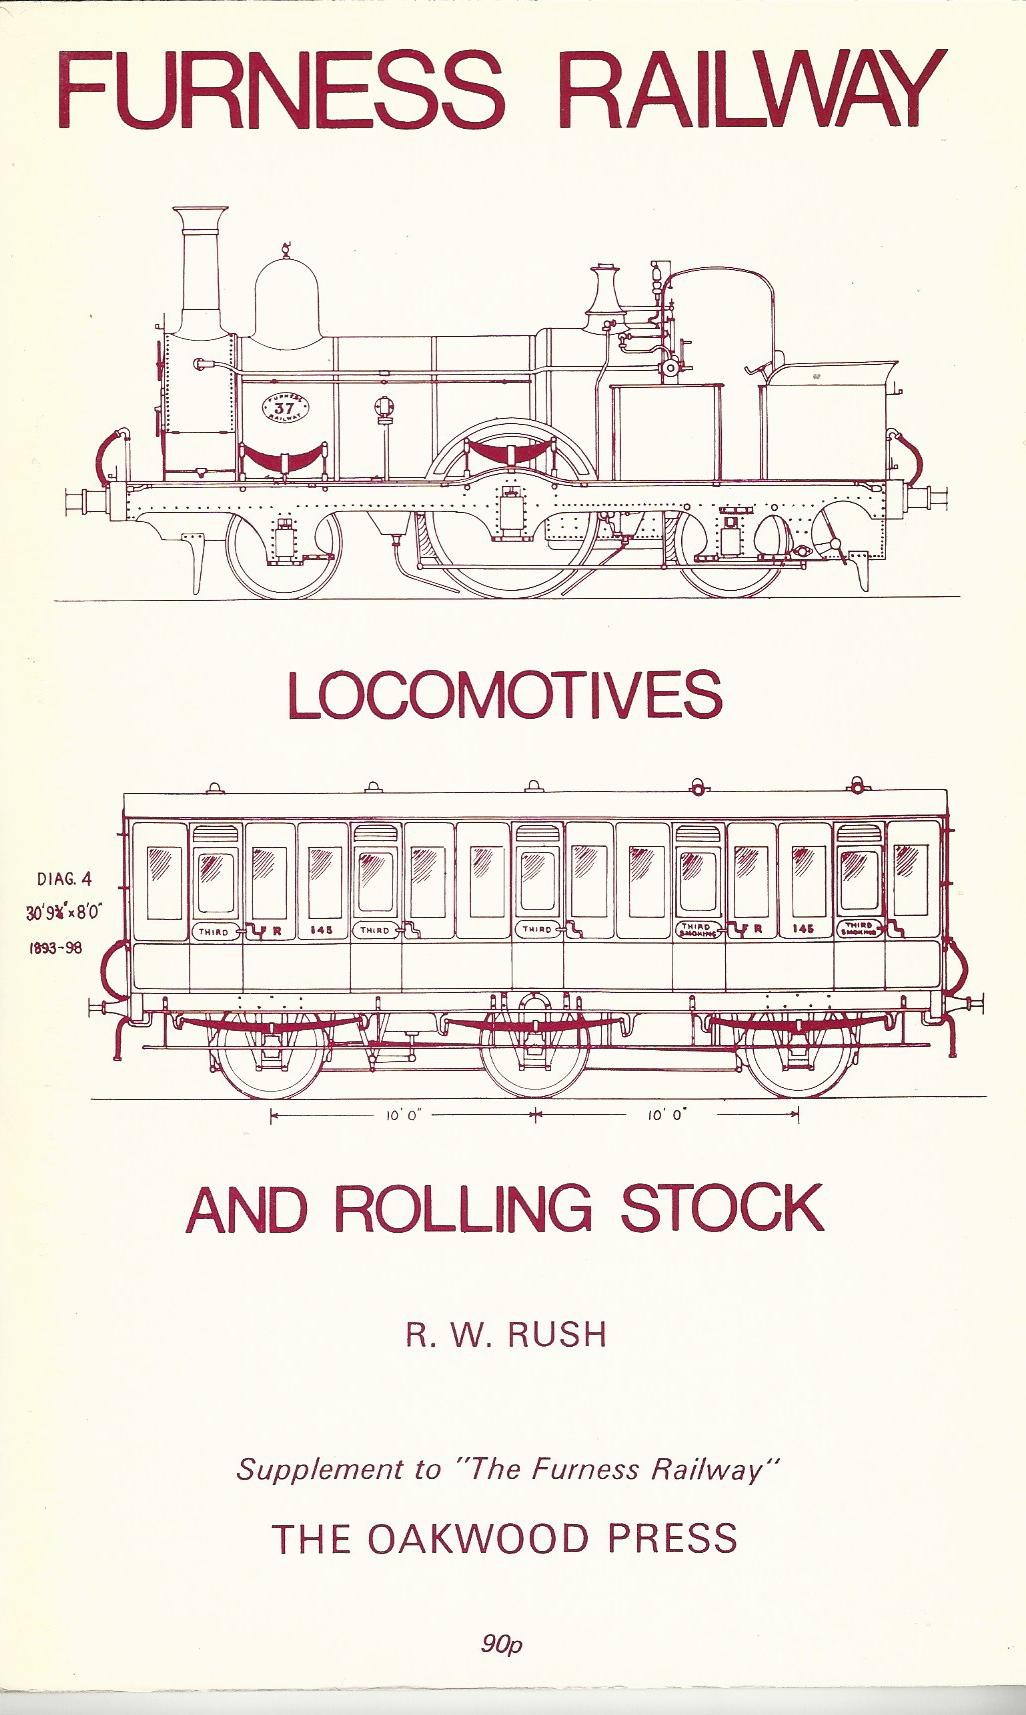 Image for Furness Railway, Locomotives and Rolling Stock.